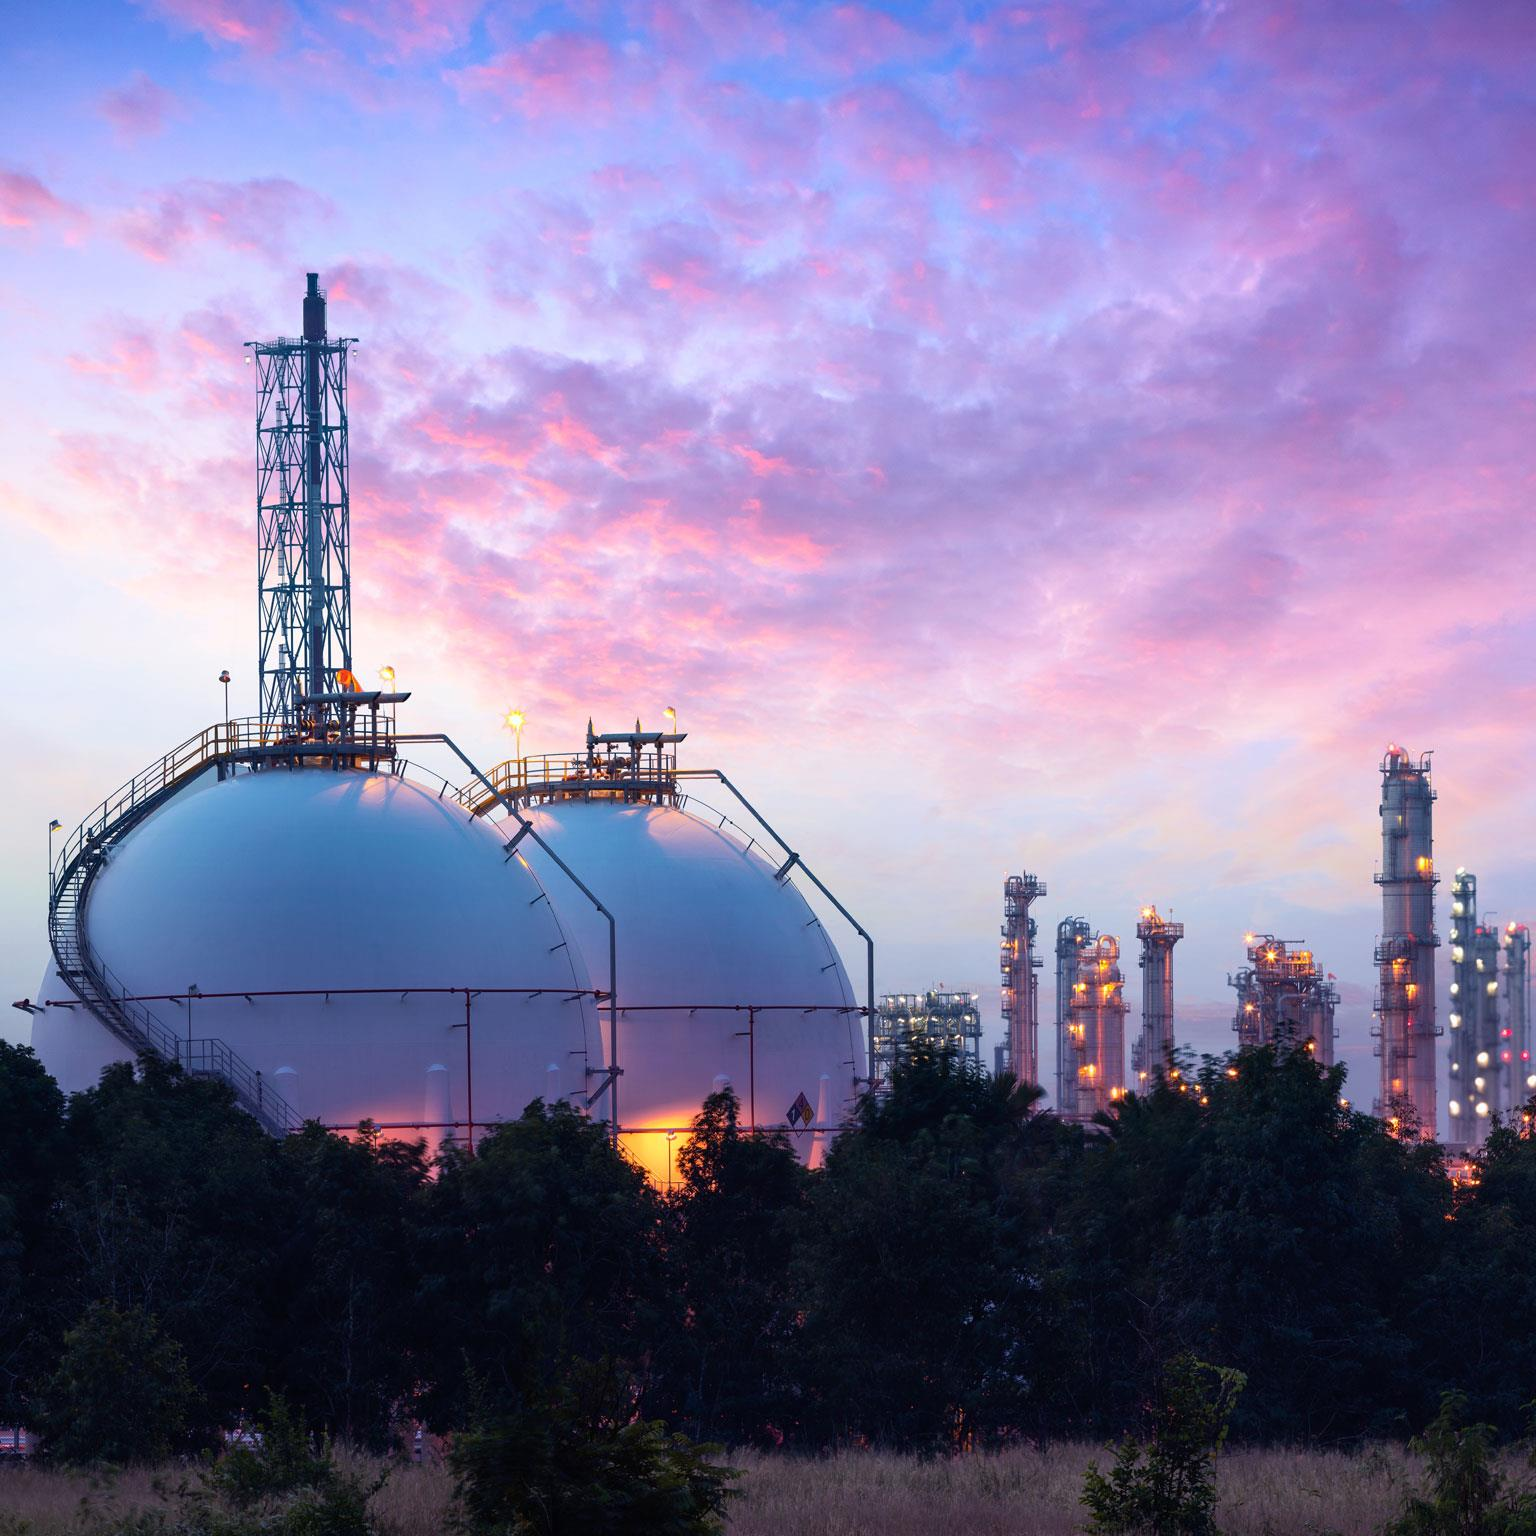 analysis of the oil and gas industries Complete gas analysis solutions from c6+ natural gas measurement to combustion, to complex processing applications and emission monitoring solutions for regulatory compliance, emerson's rosemount analyzers and integrated systems can solve the toughest gas analysis challenges for a wide range of industries and applications.